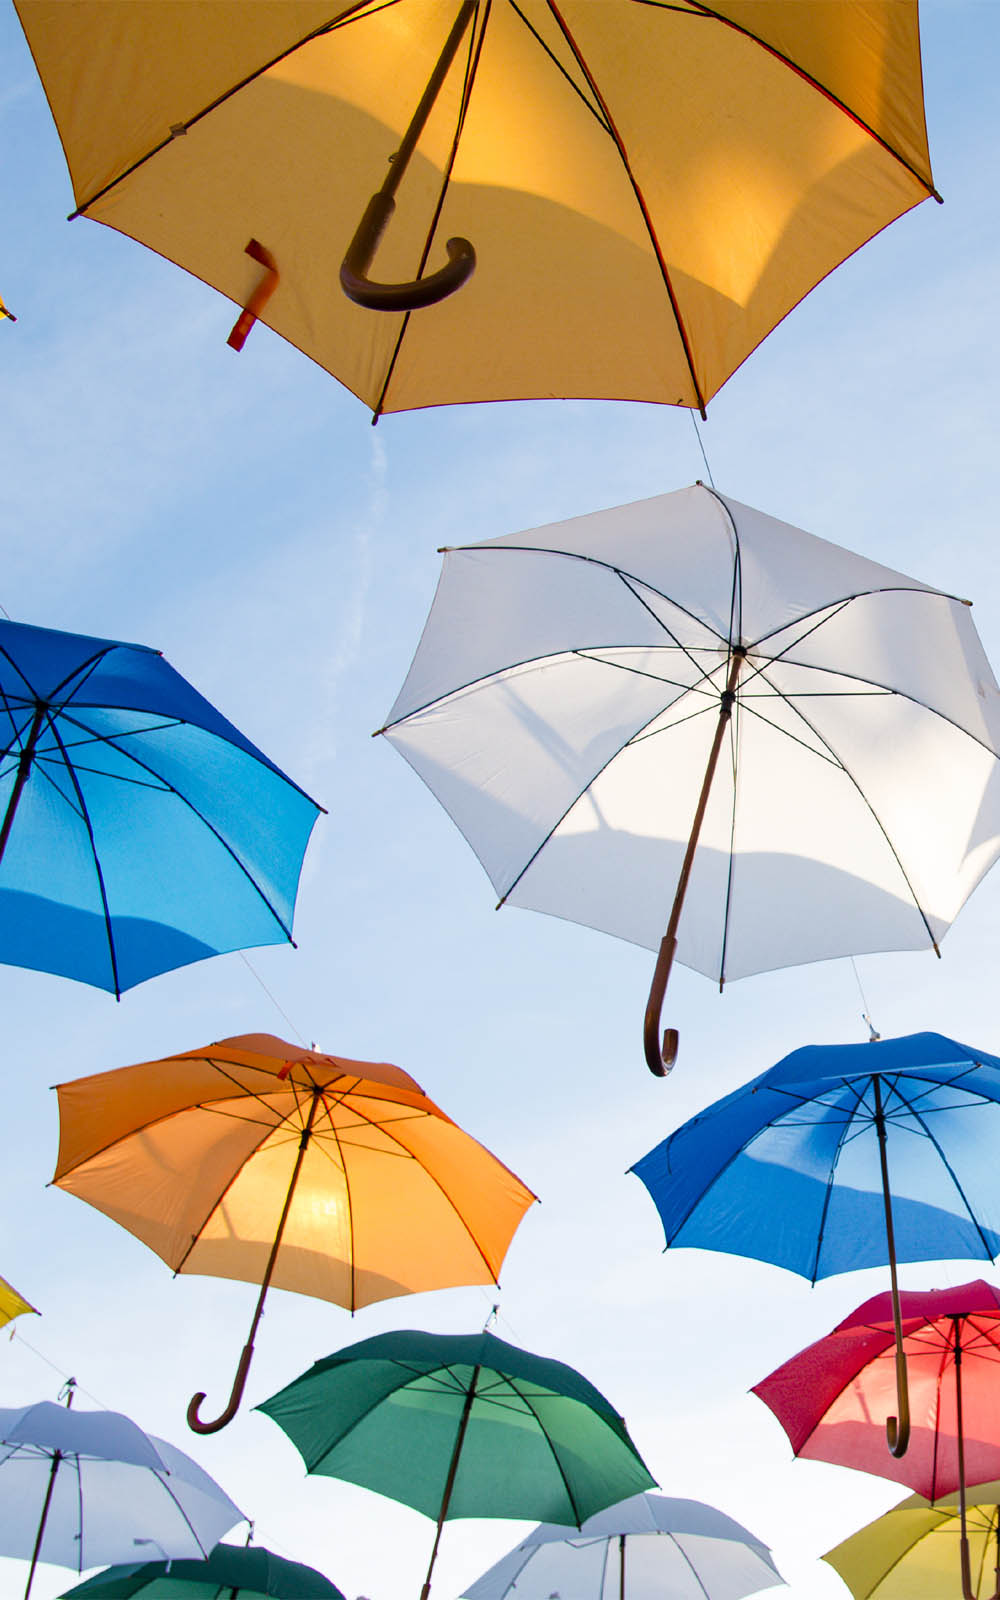 Colorful Food Wallpaper Free Download: Download Colorful Flying Umbrellas Free Pure 4K Ultra HD